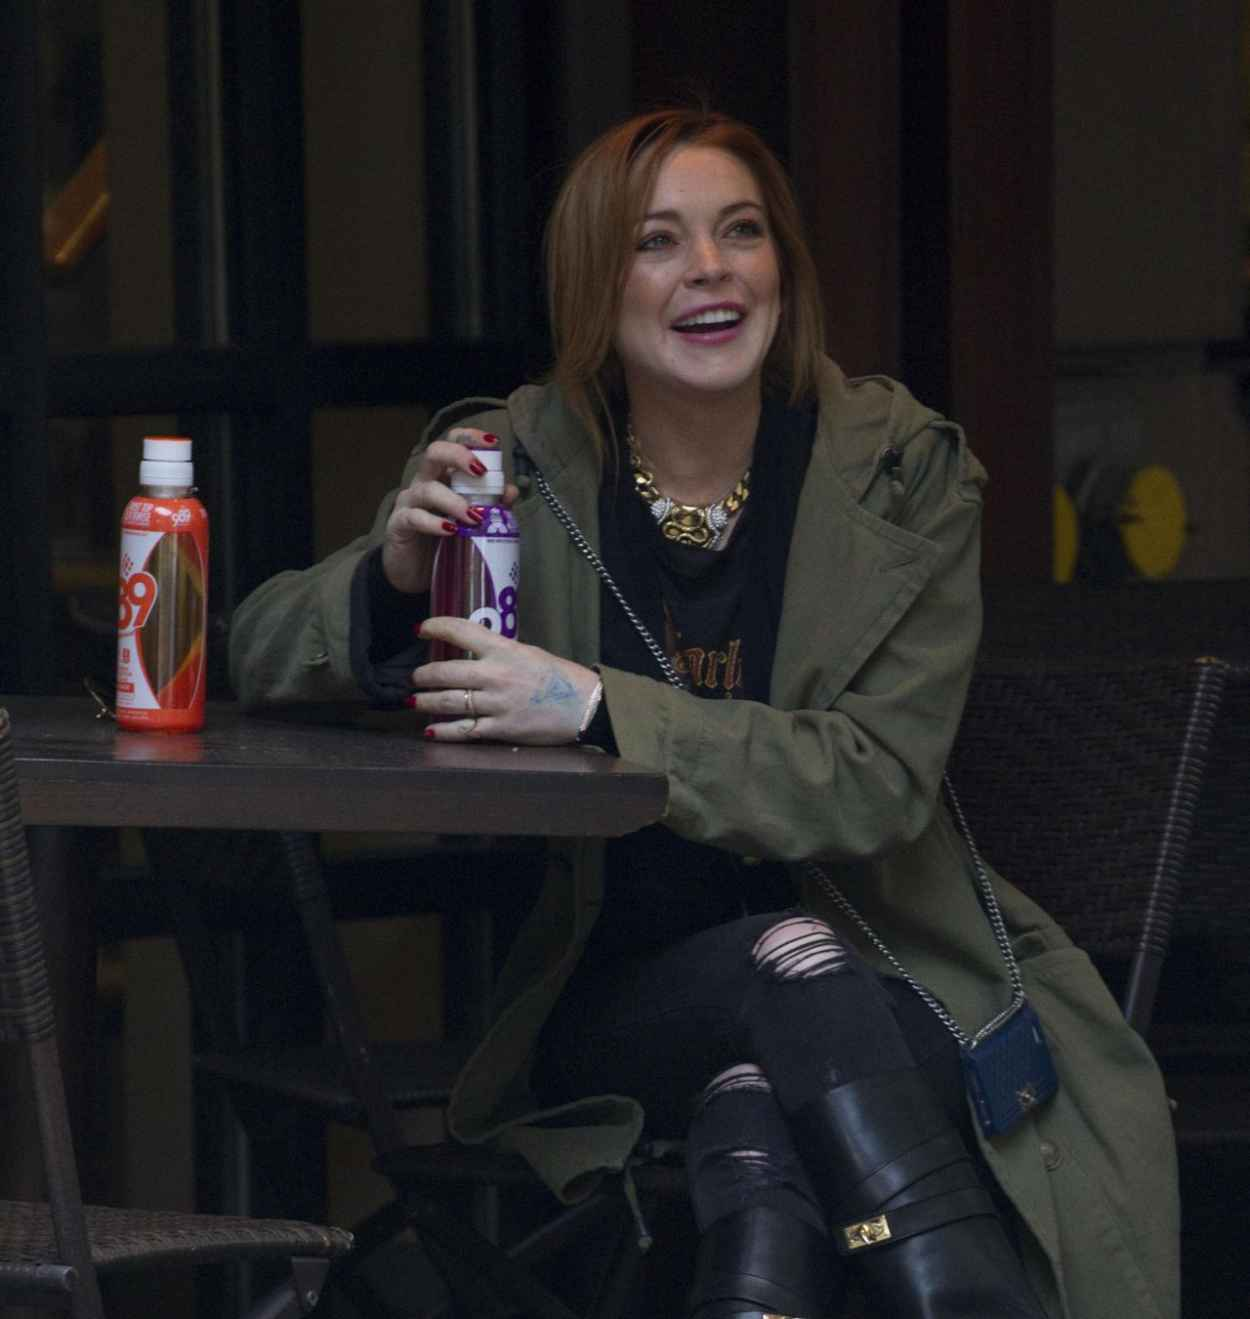 Lindsay Lohan Street Style - Sitting at a Hotel in New York City - February 2015-1